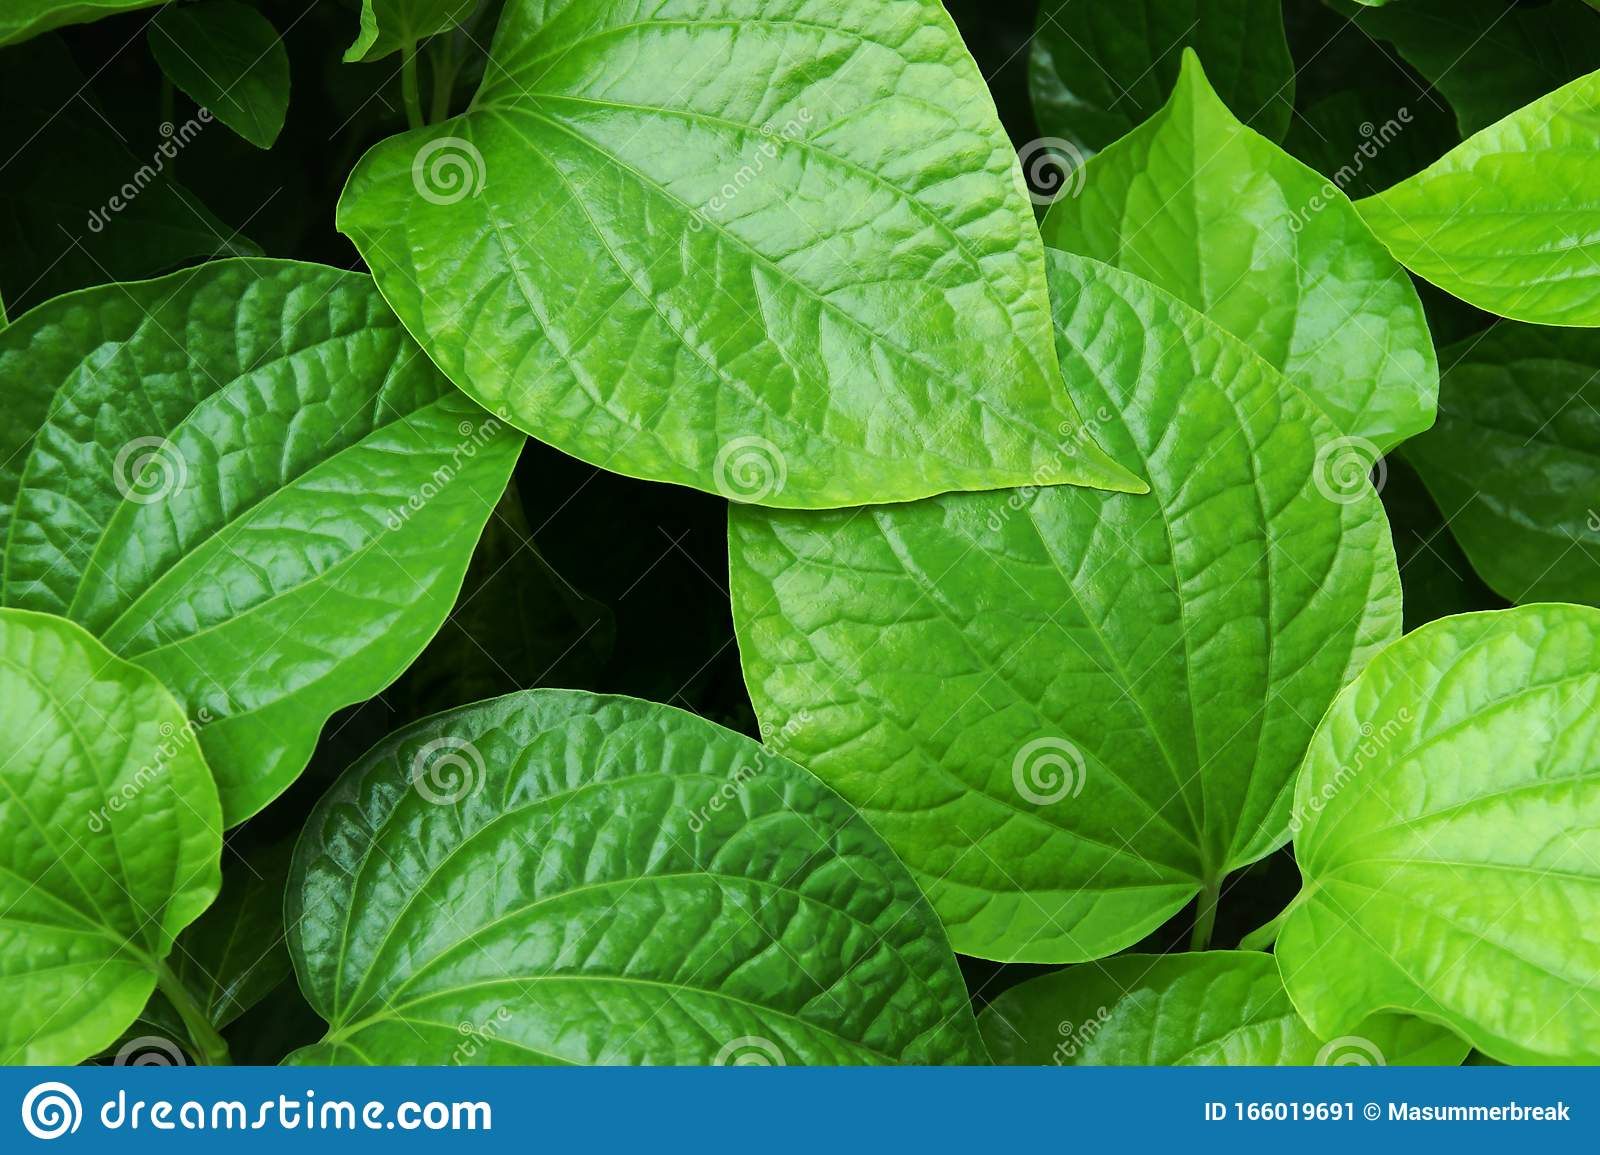 Tropical Fresh Green Leaves Foliage Of Edible Plant Stock Image Image Of Food Green 166019691 Find over 100+ of the best free tropical leaves images. https www dreamstime com tropical fresh green leaves foliage edible plant tropical fresh green leaves foliage edible plant image166019691